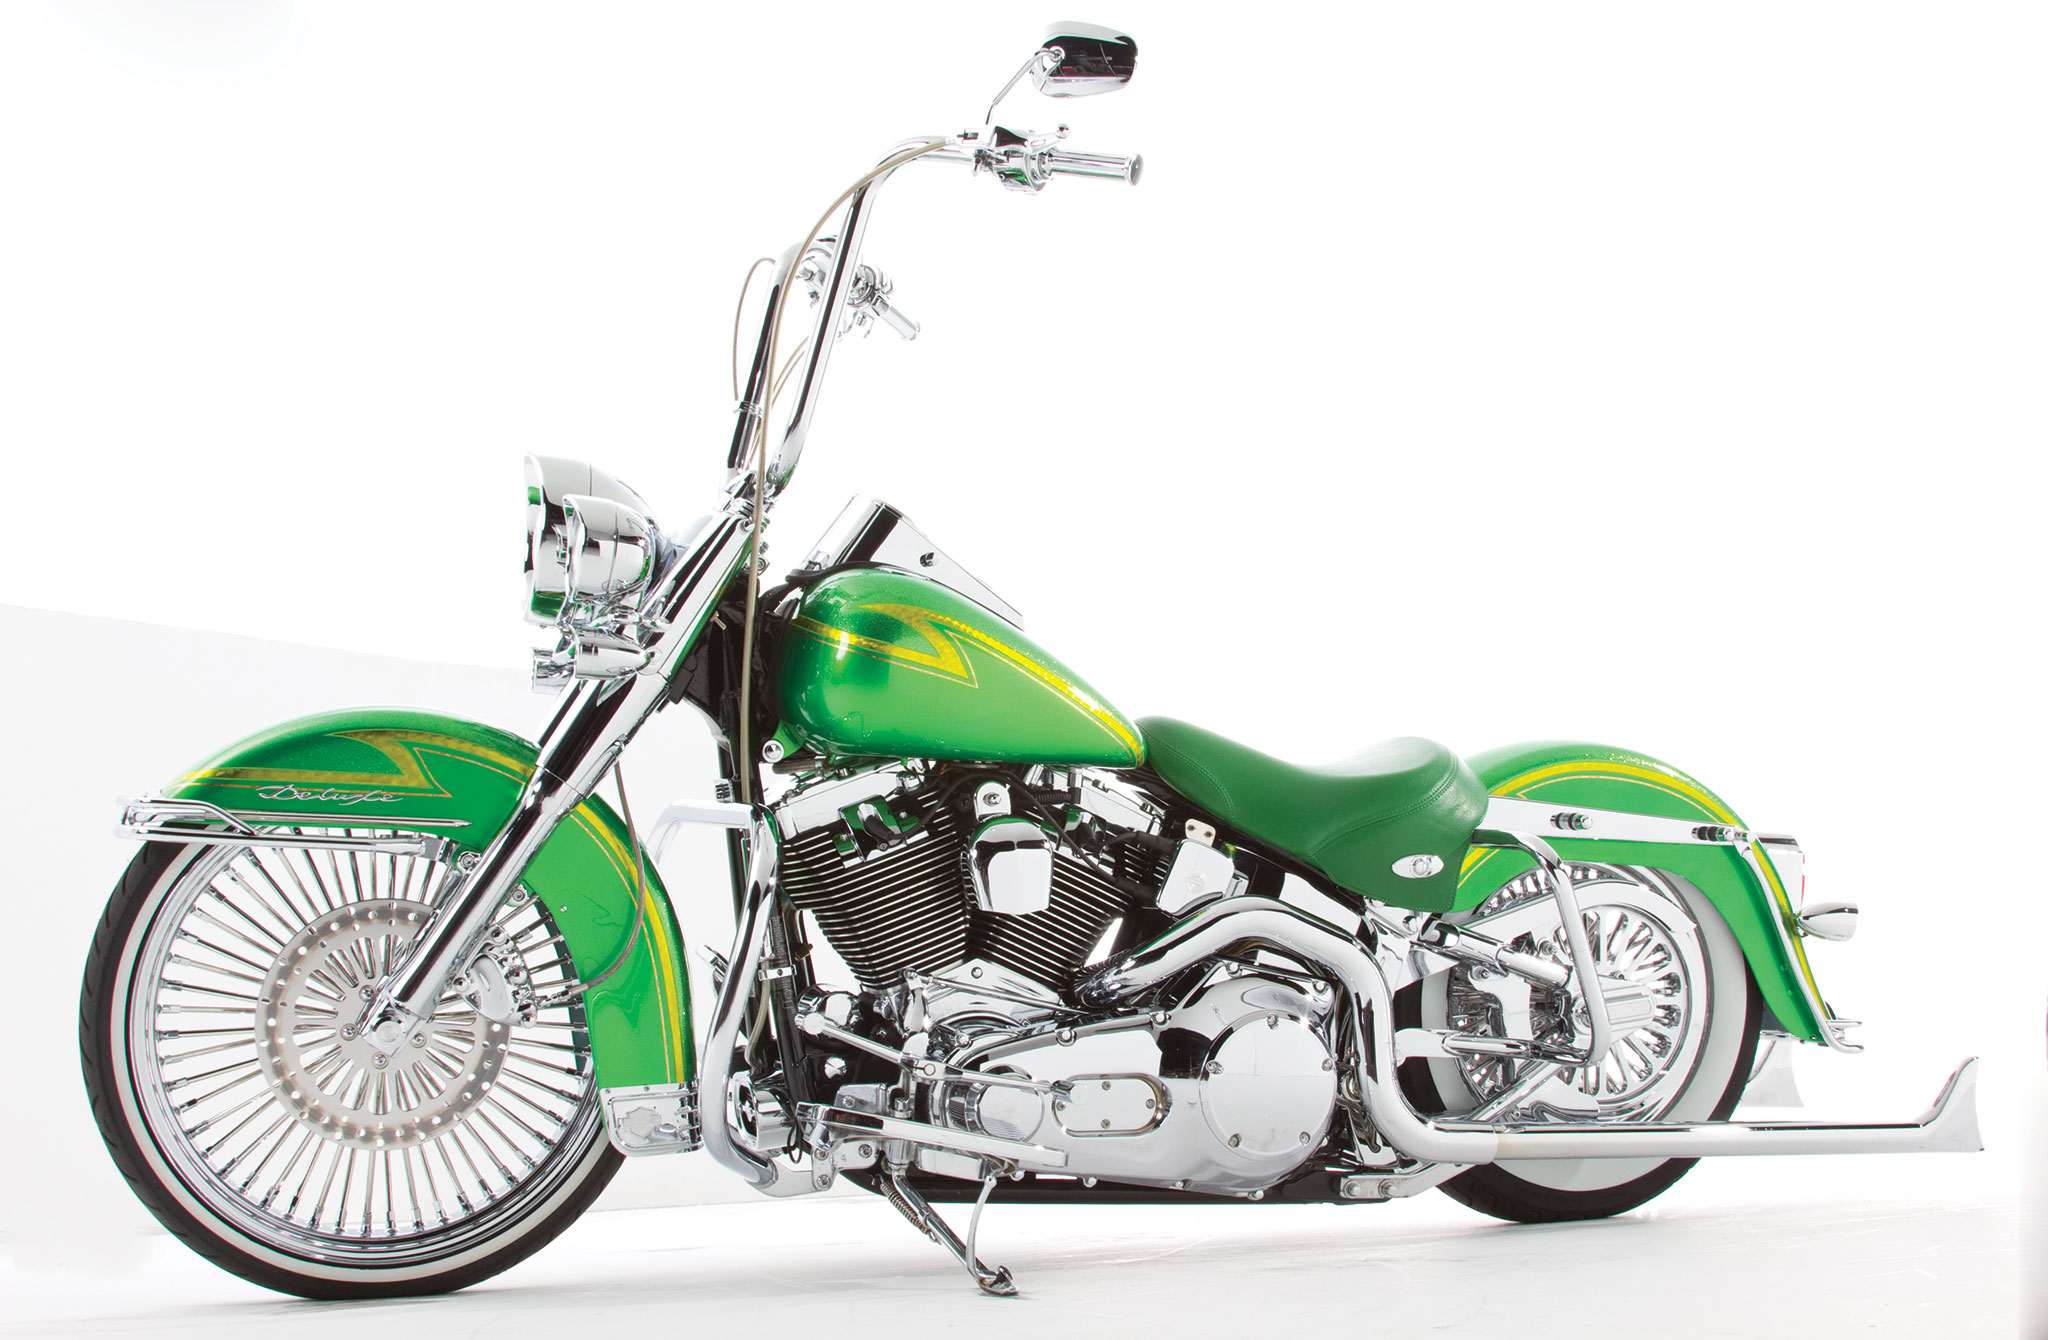 Images Of A   Harley Davidson Street  In Green